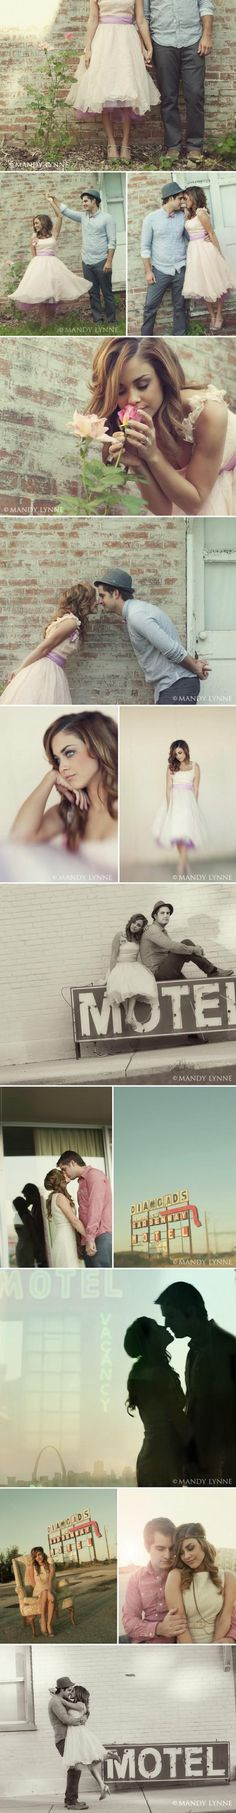 Engagement - Weddbook